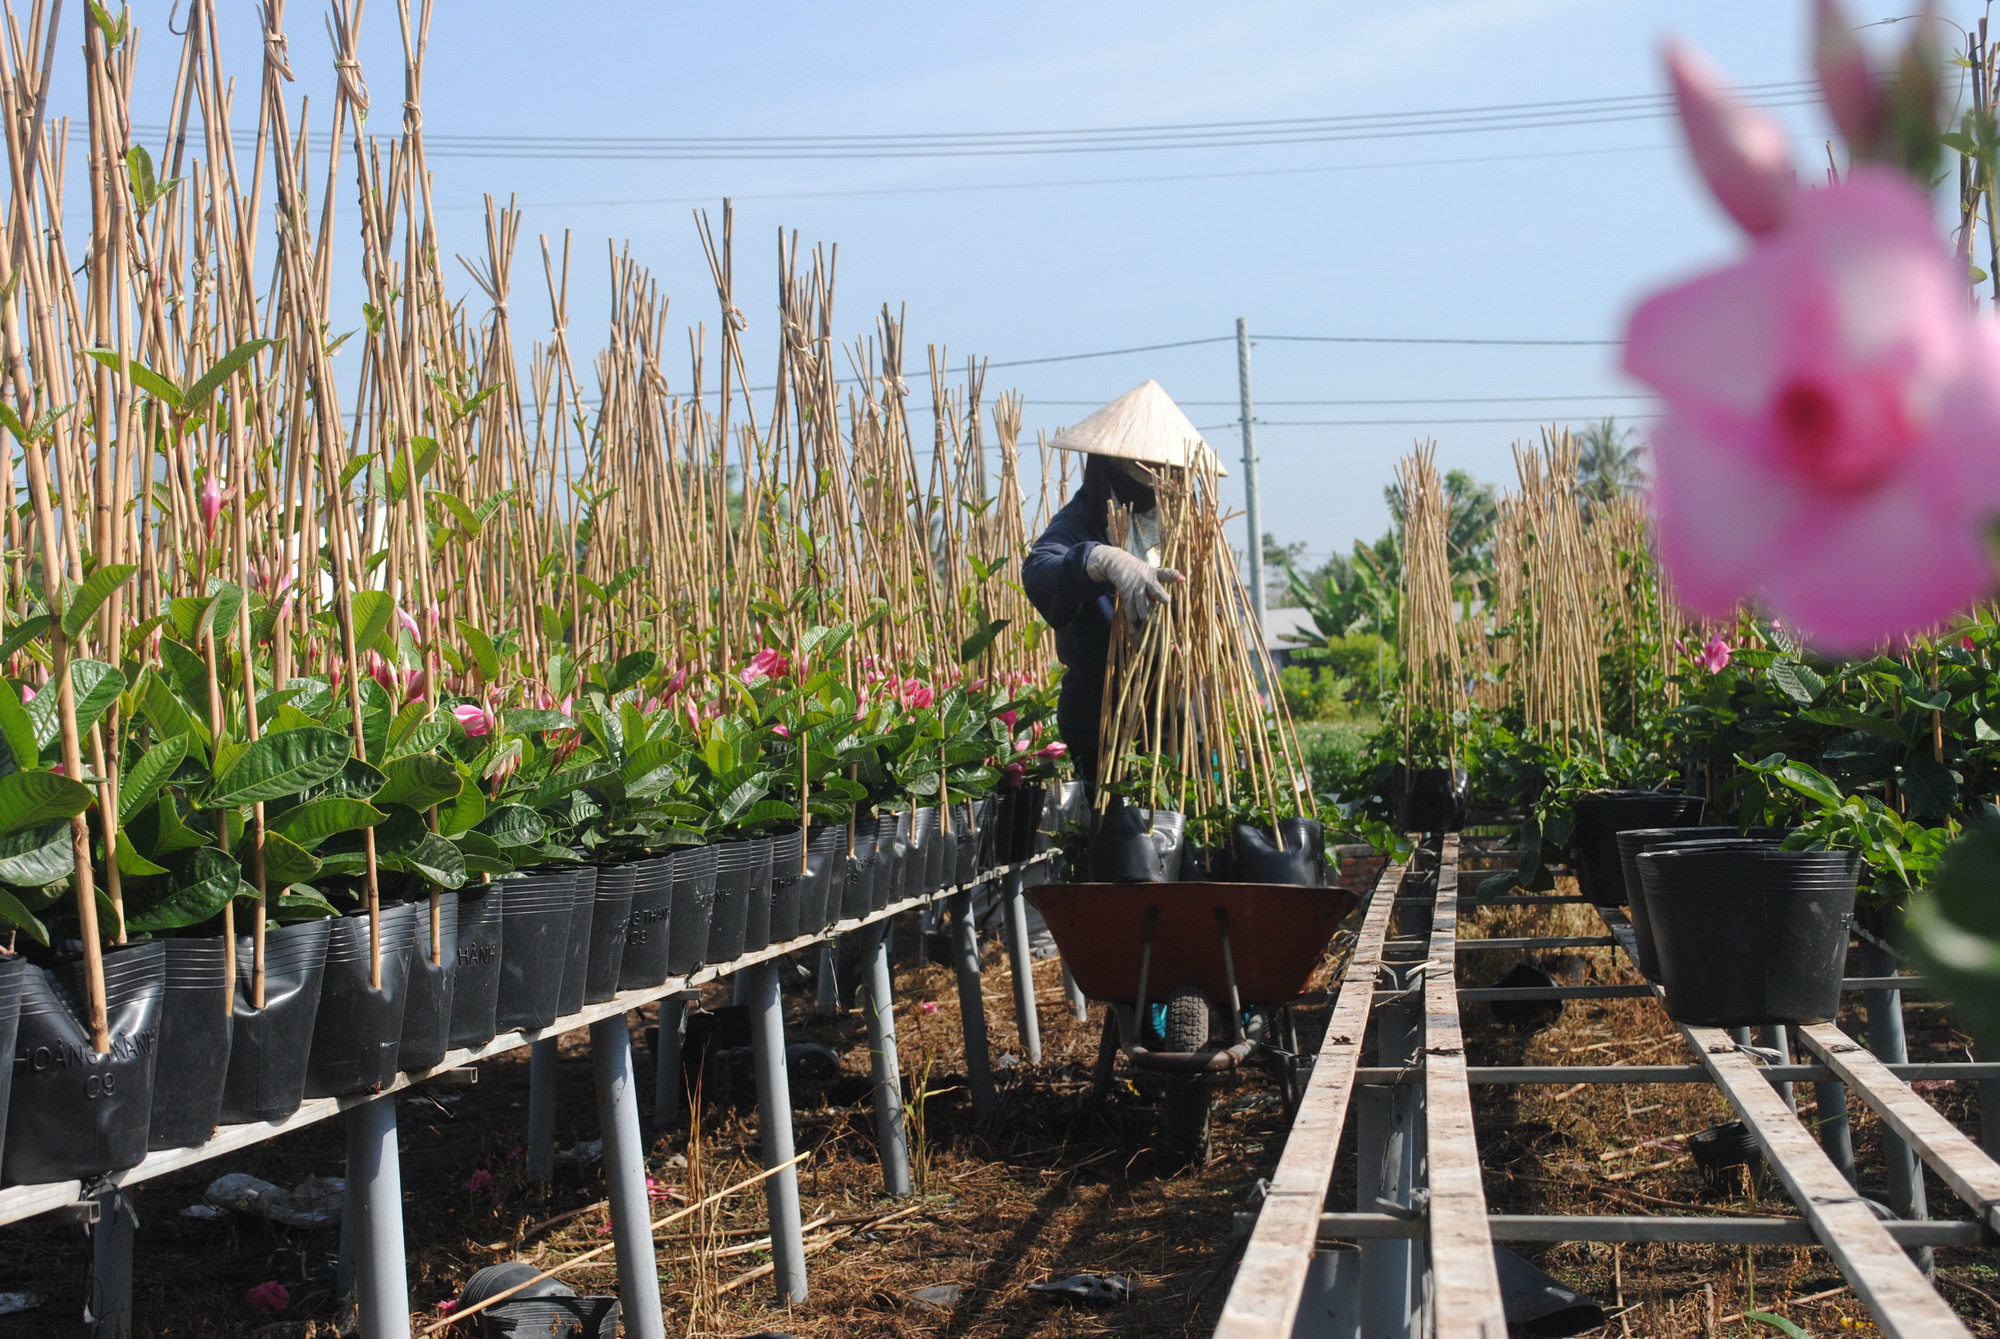 A woman harvests flowers at Sa Dec Flower Village. Photo: Thanh Nhon / Tuoi Tre